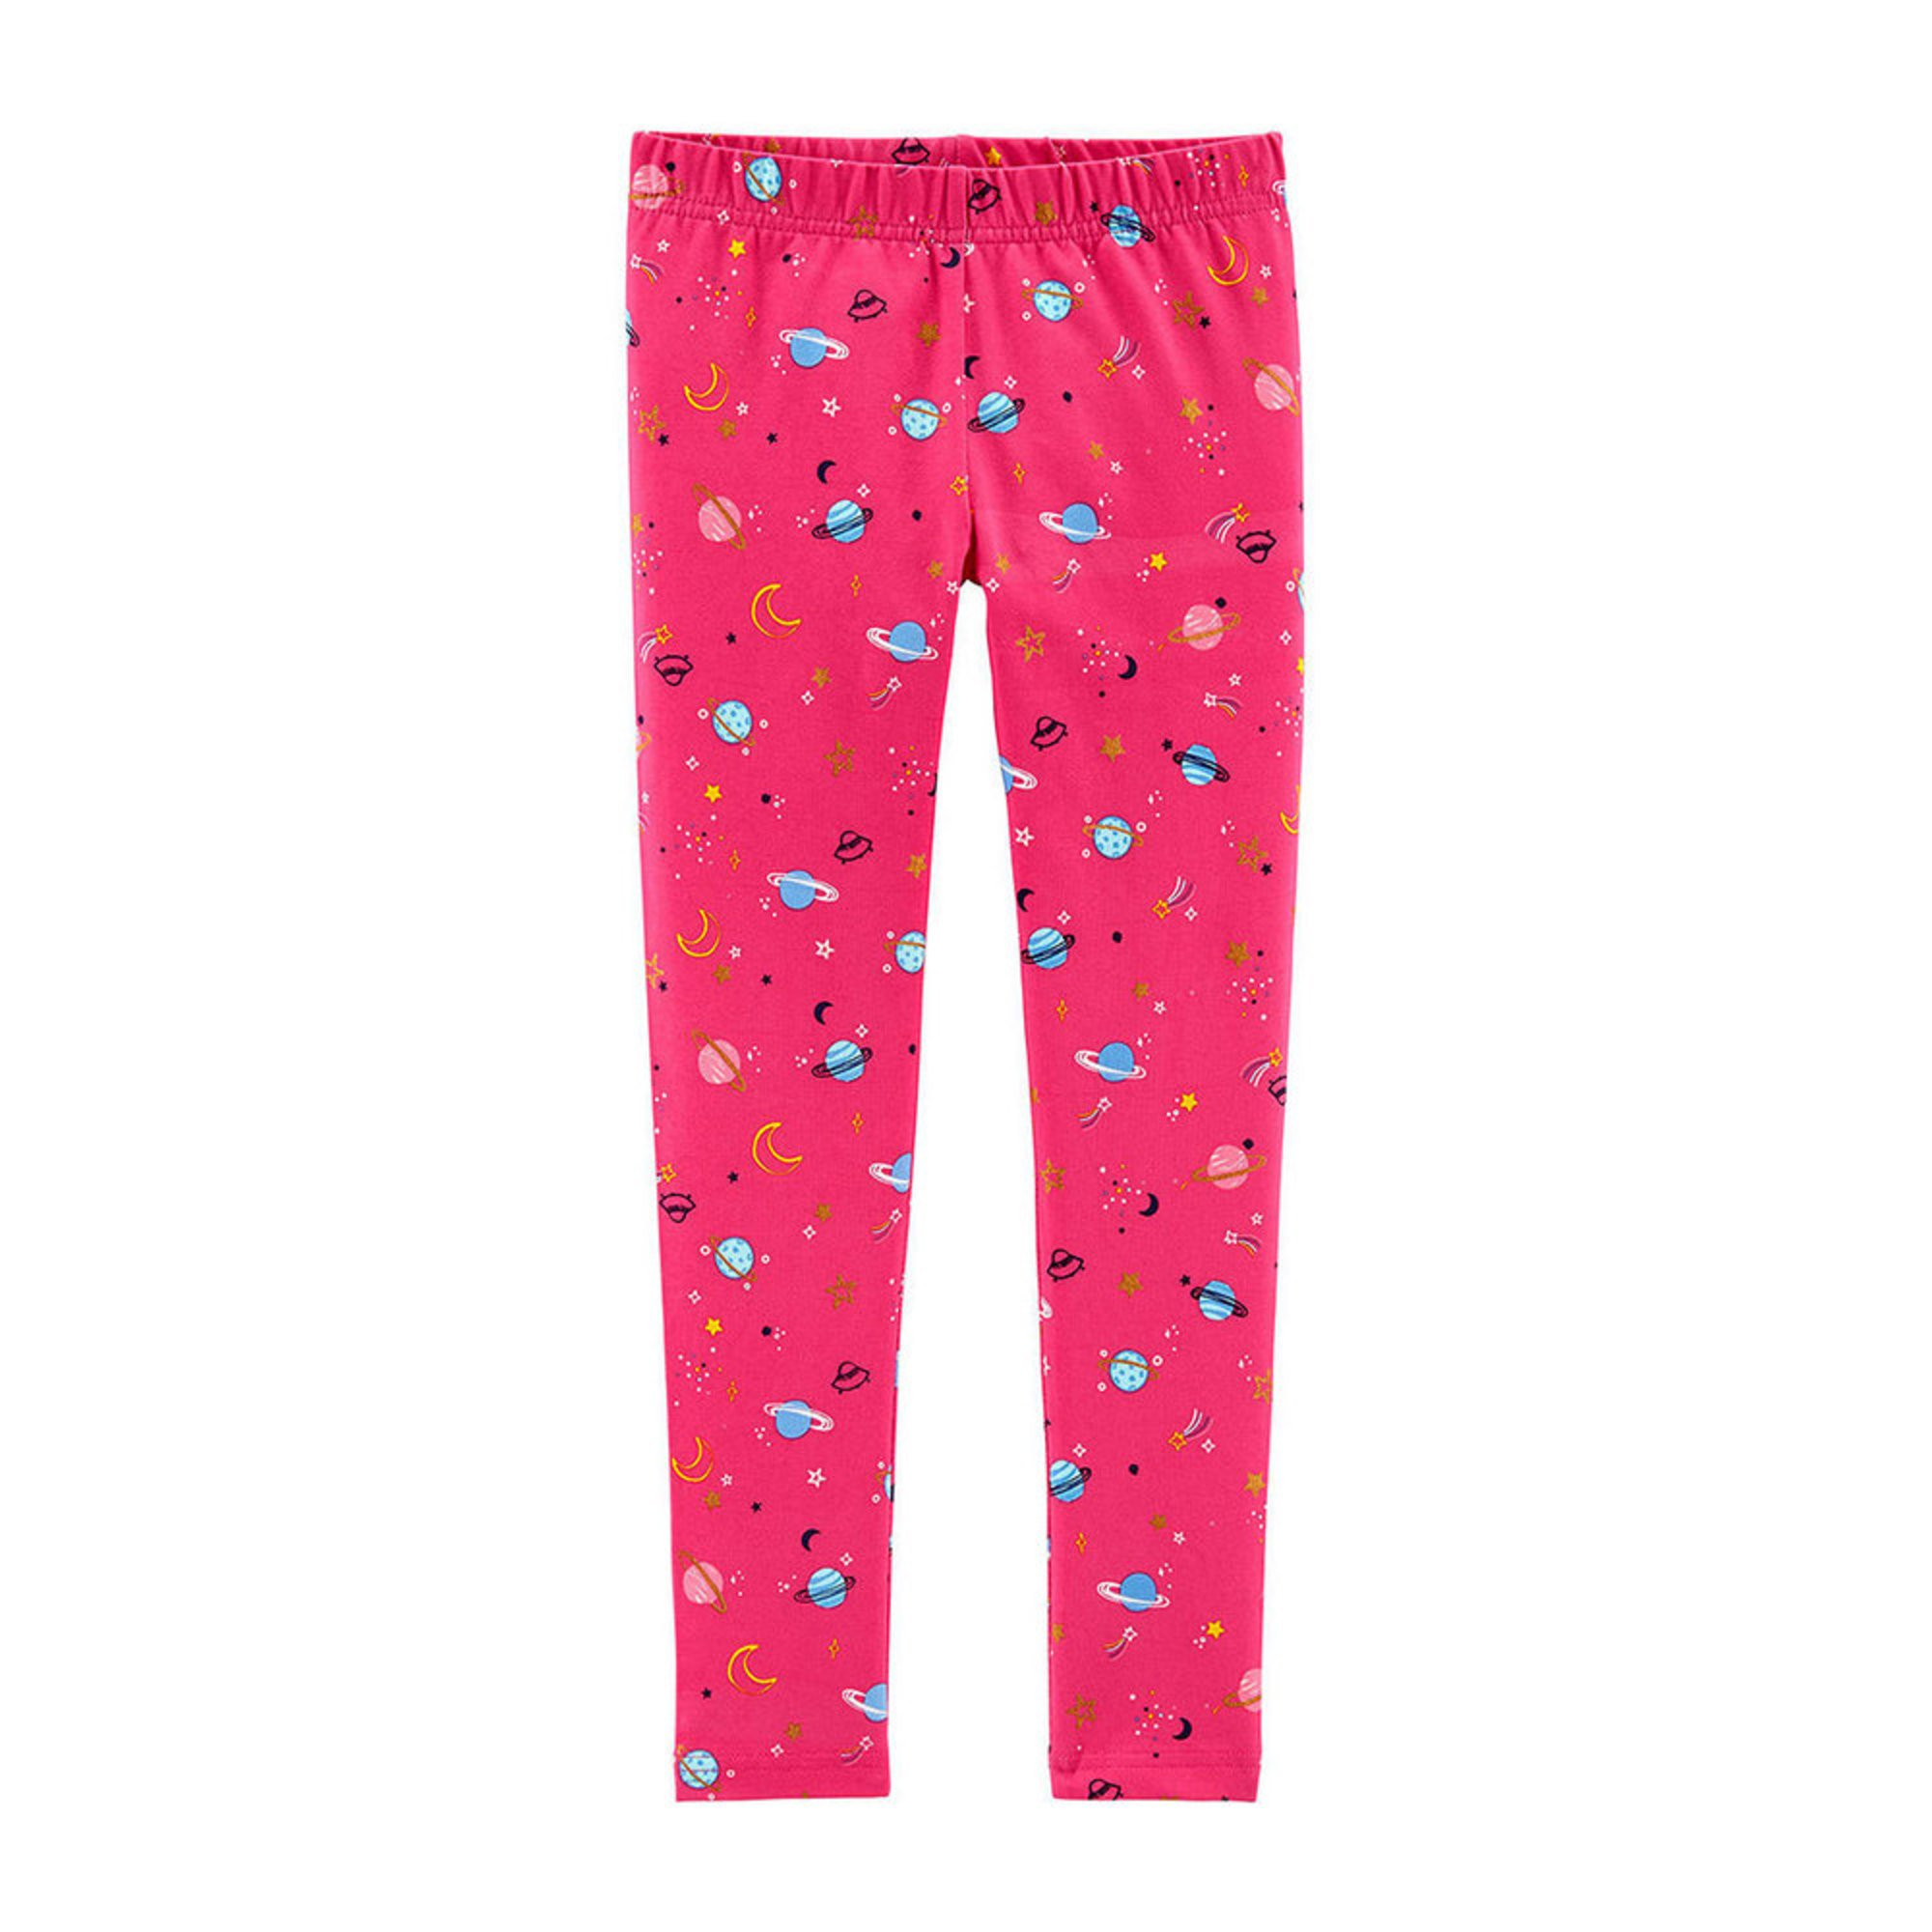 83f701146e5e3d Carters Toddler Girls All Over Space Print Legging | Little Girls ...